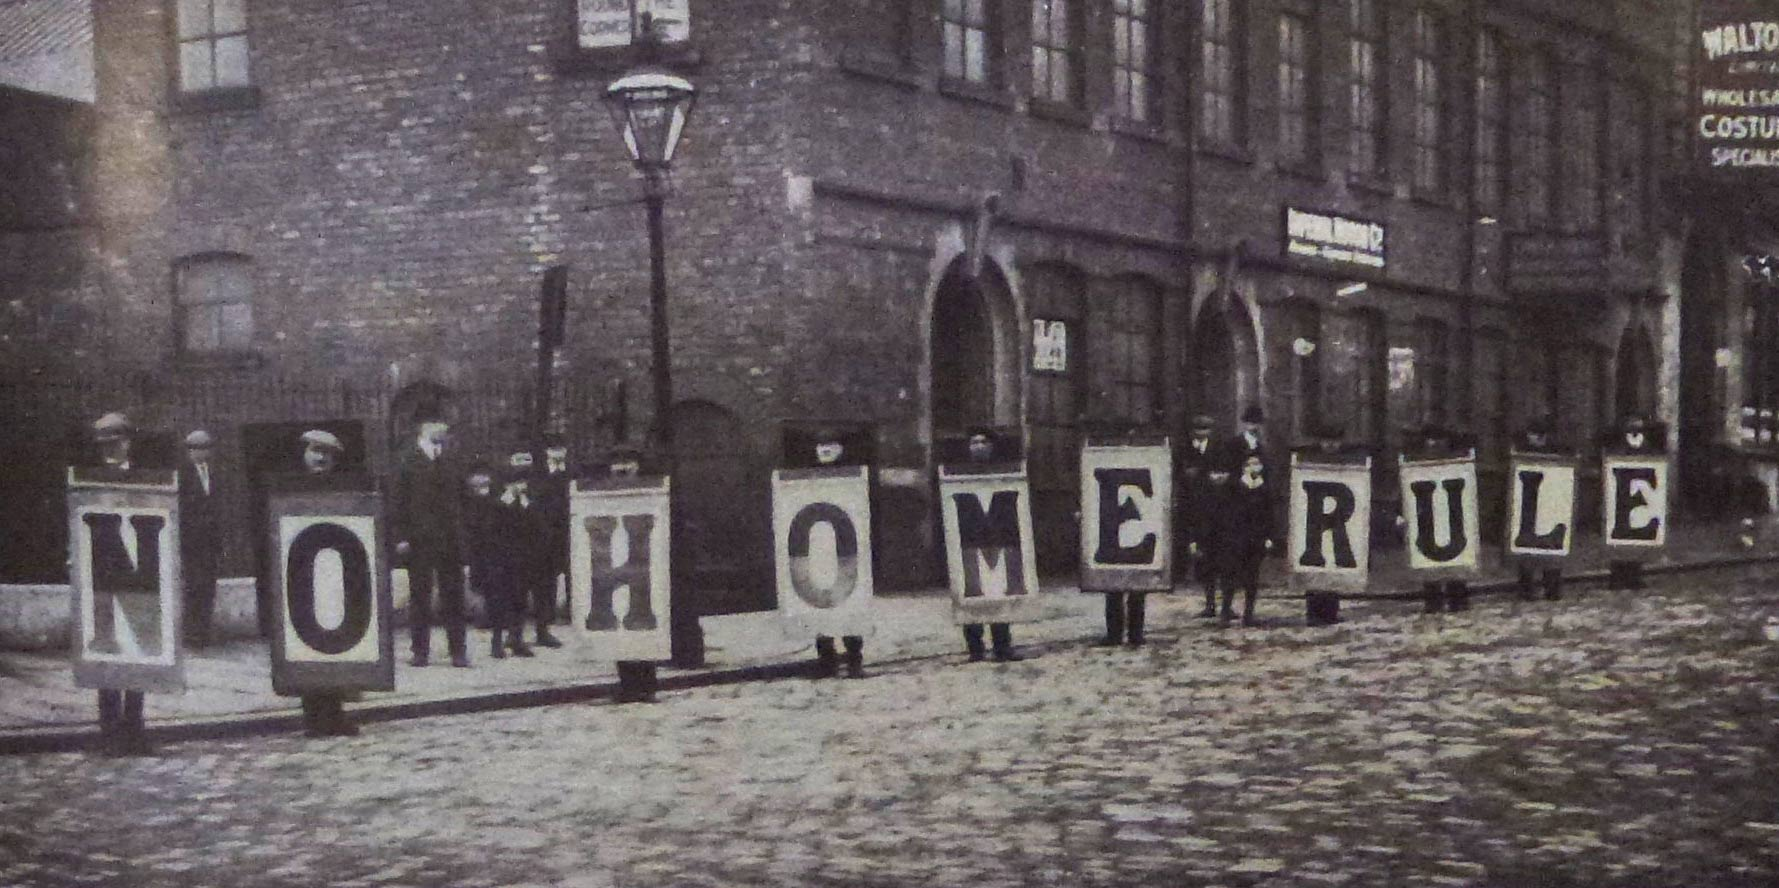 'No Home Rule!' Leeds unionists publicising their opposition to Home Rule in the lead up to the two by-elections